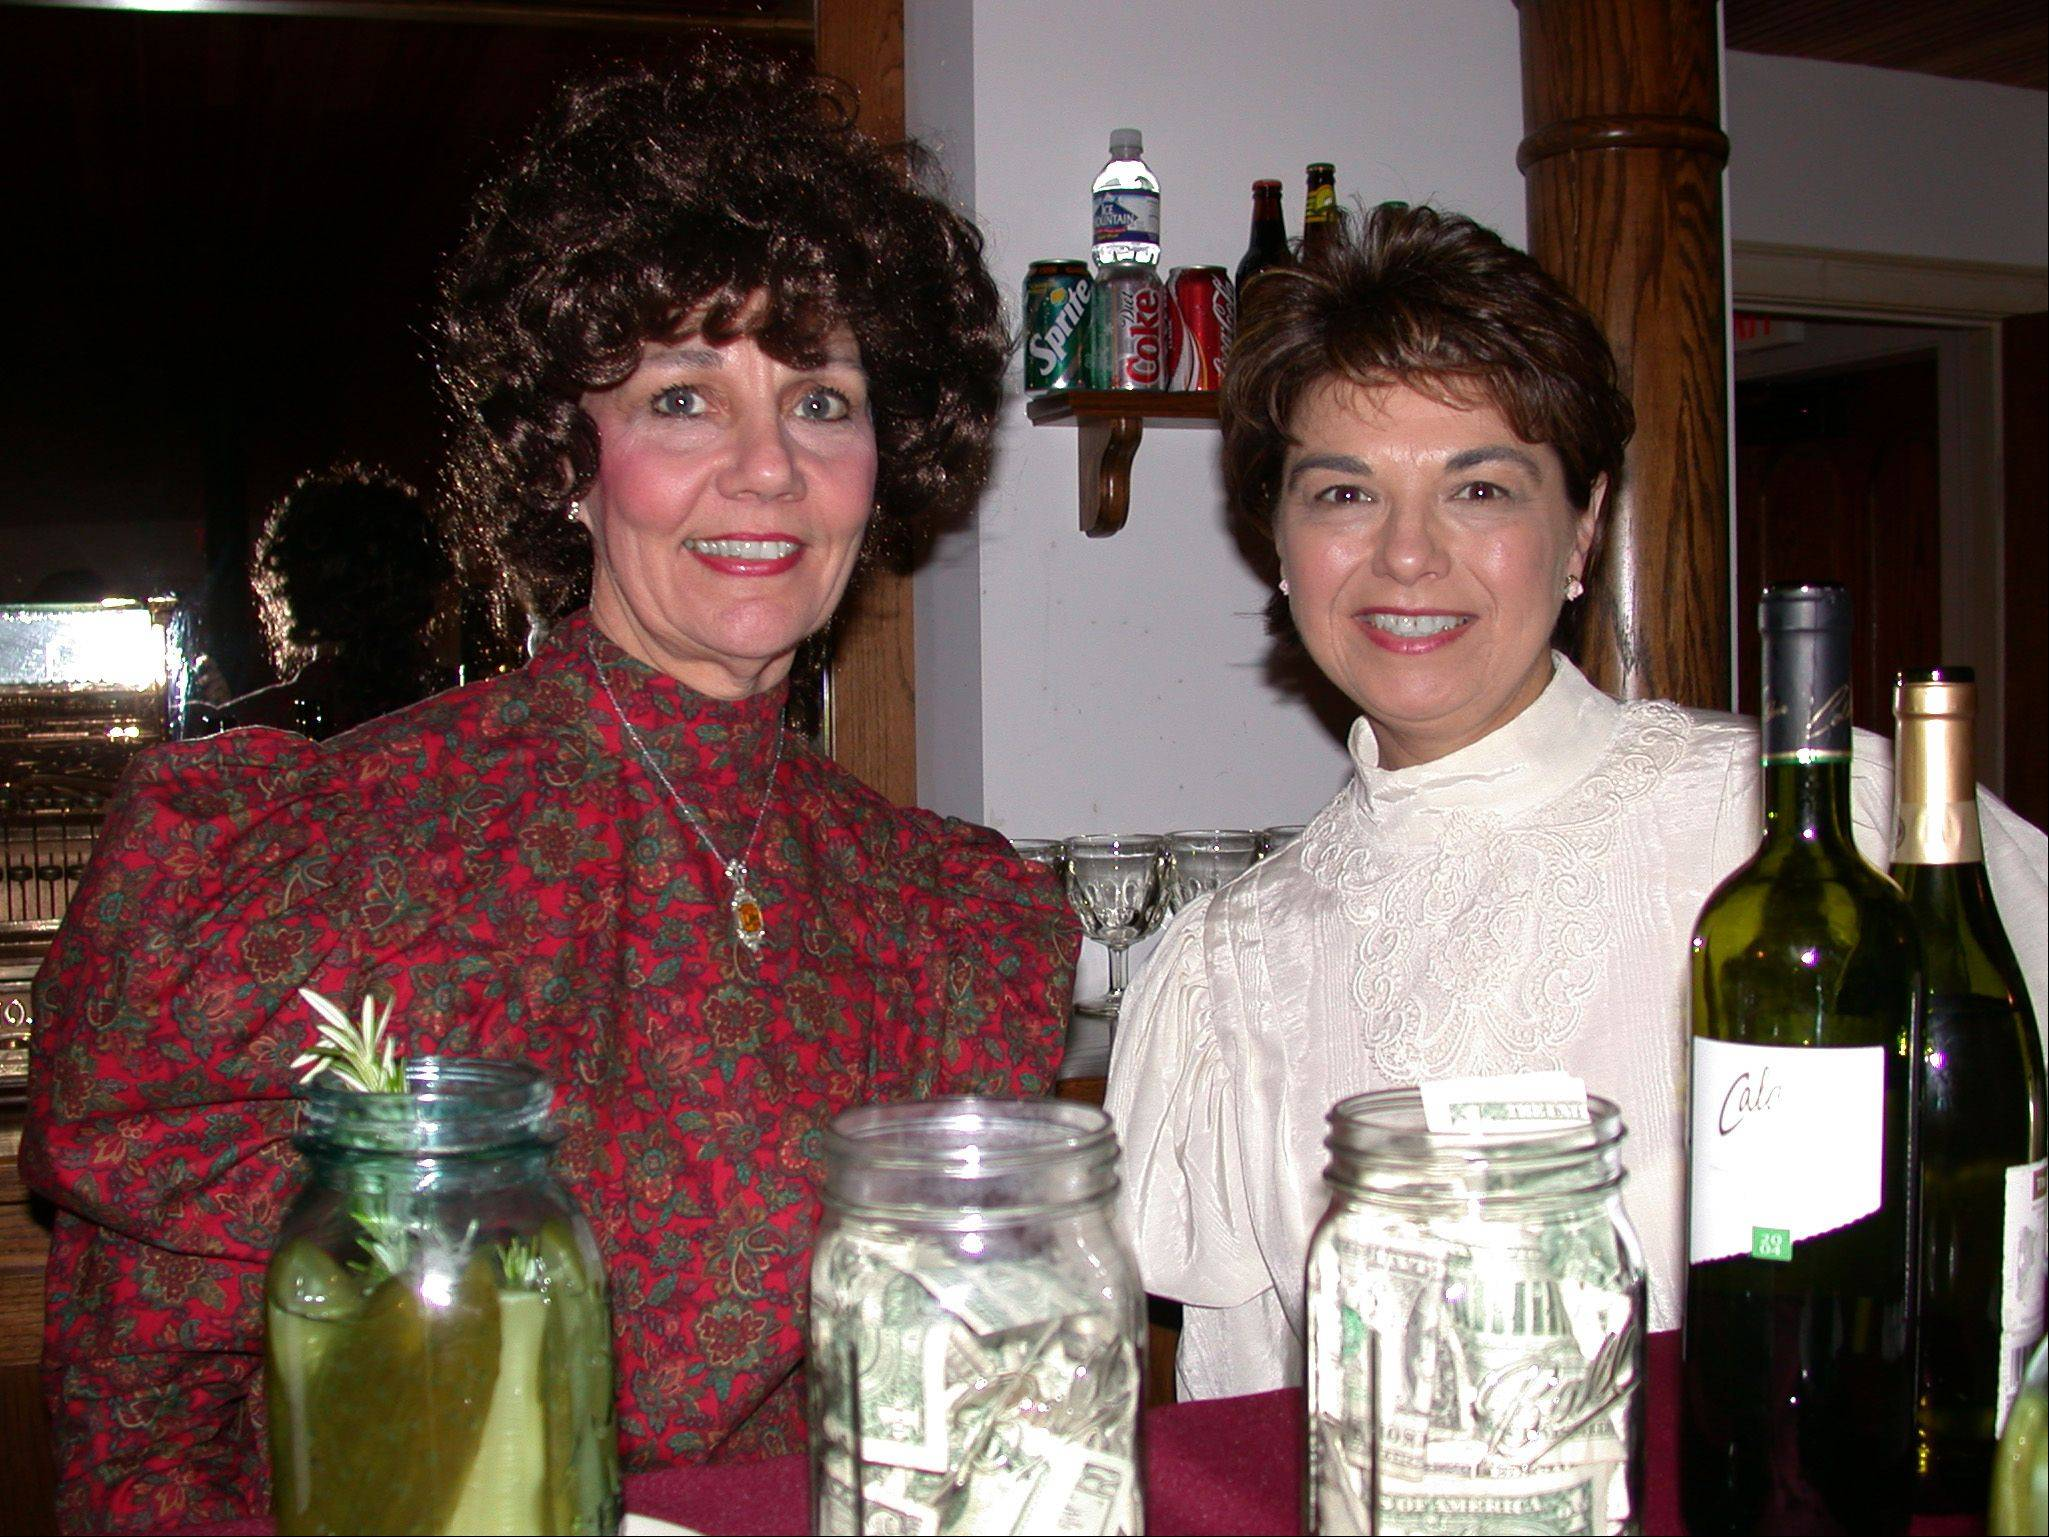 Stephanie Penick and Mary Ann Junkrowski as guest bartenders at Naper Settlement's $.35 club in the Pre-Emption House Tavern.